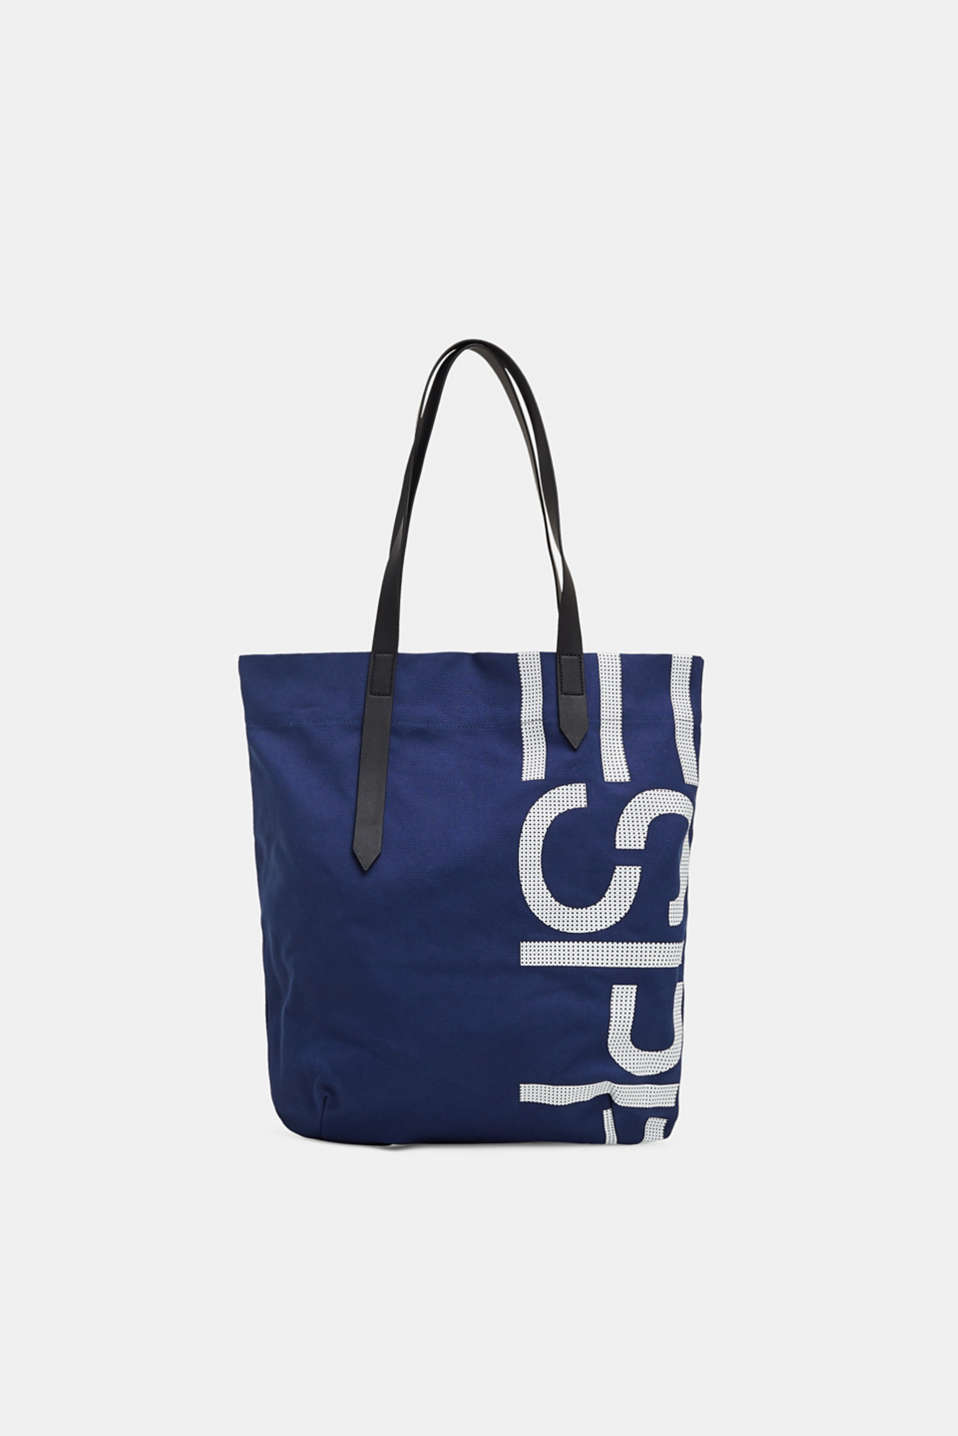 Esprit - Canvas shopper with a logo print, 100% cotton